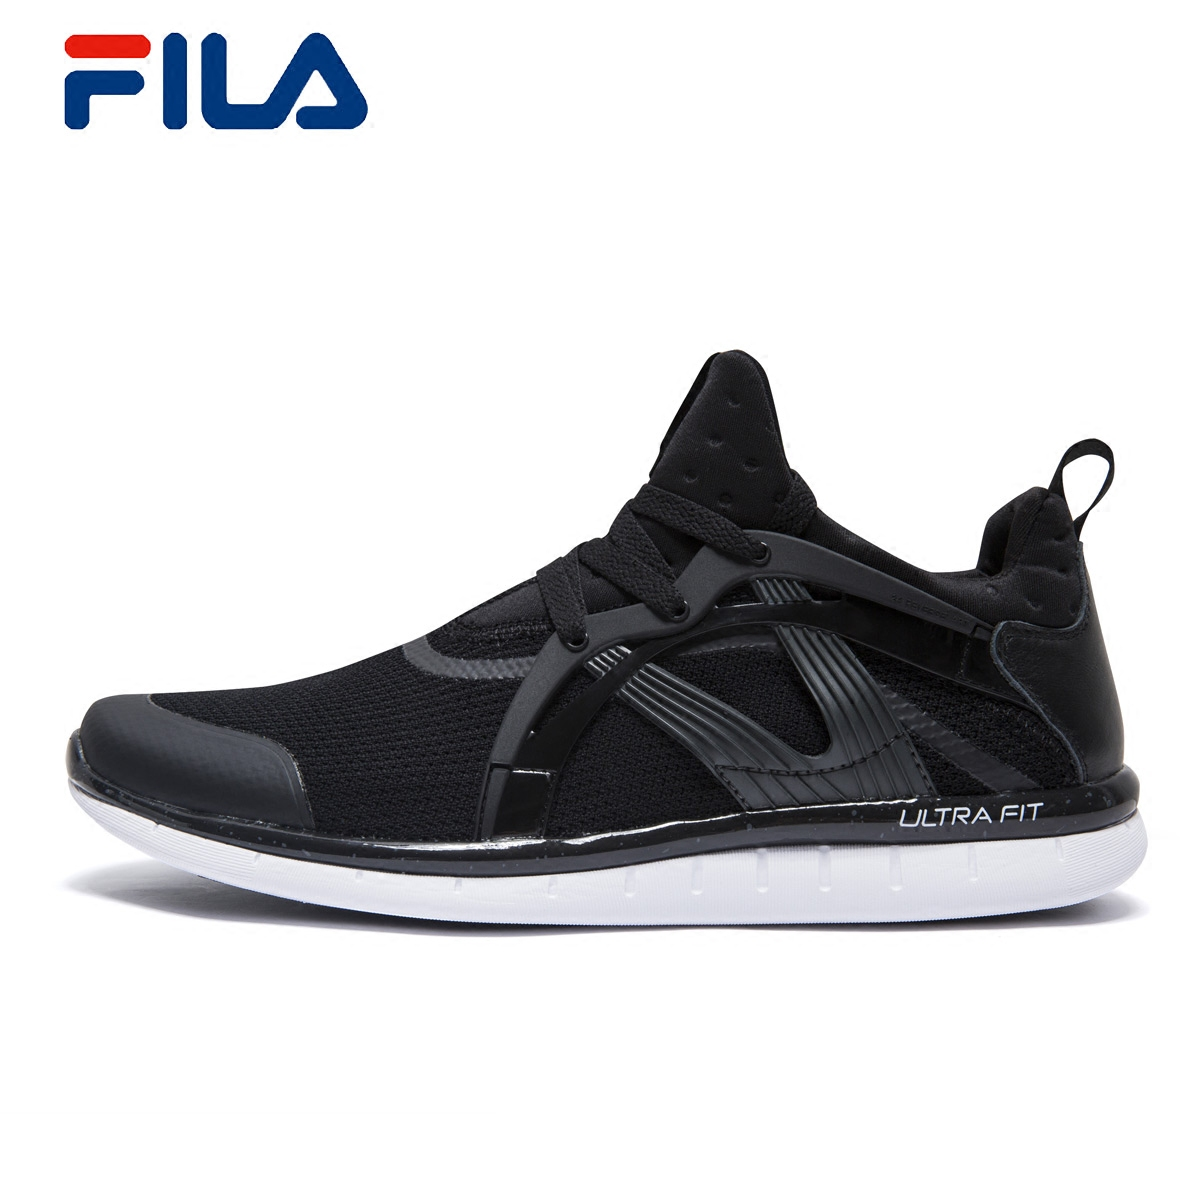 fila shoes mens 2017 Sale,up to 35% DiscountsDiscounts